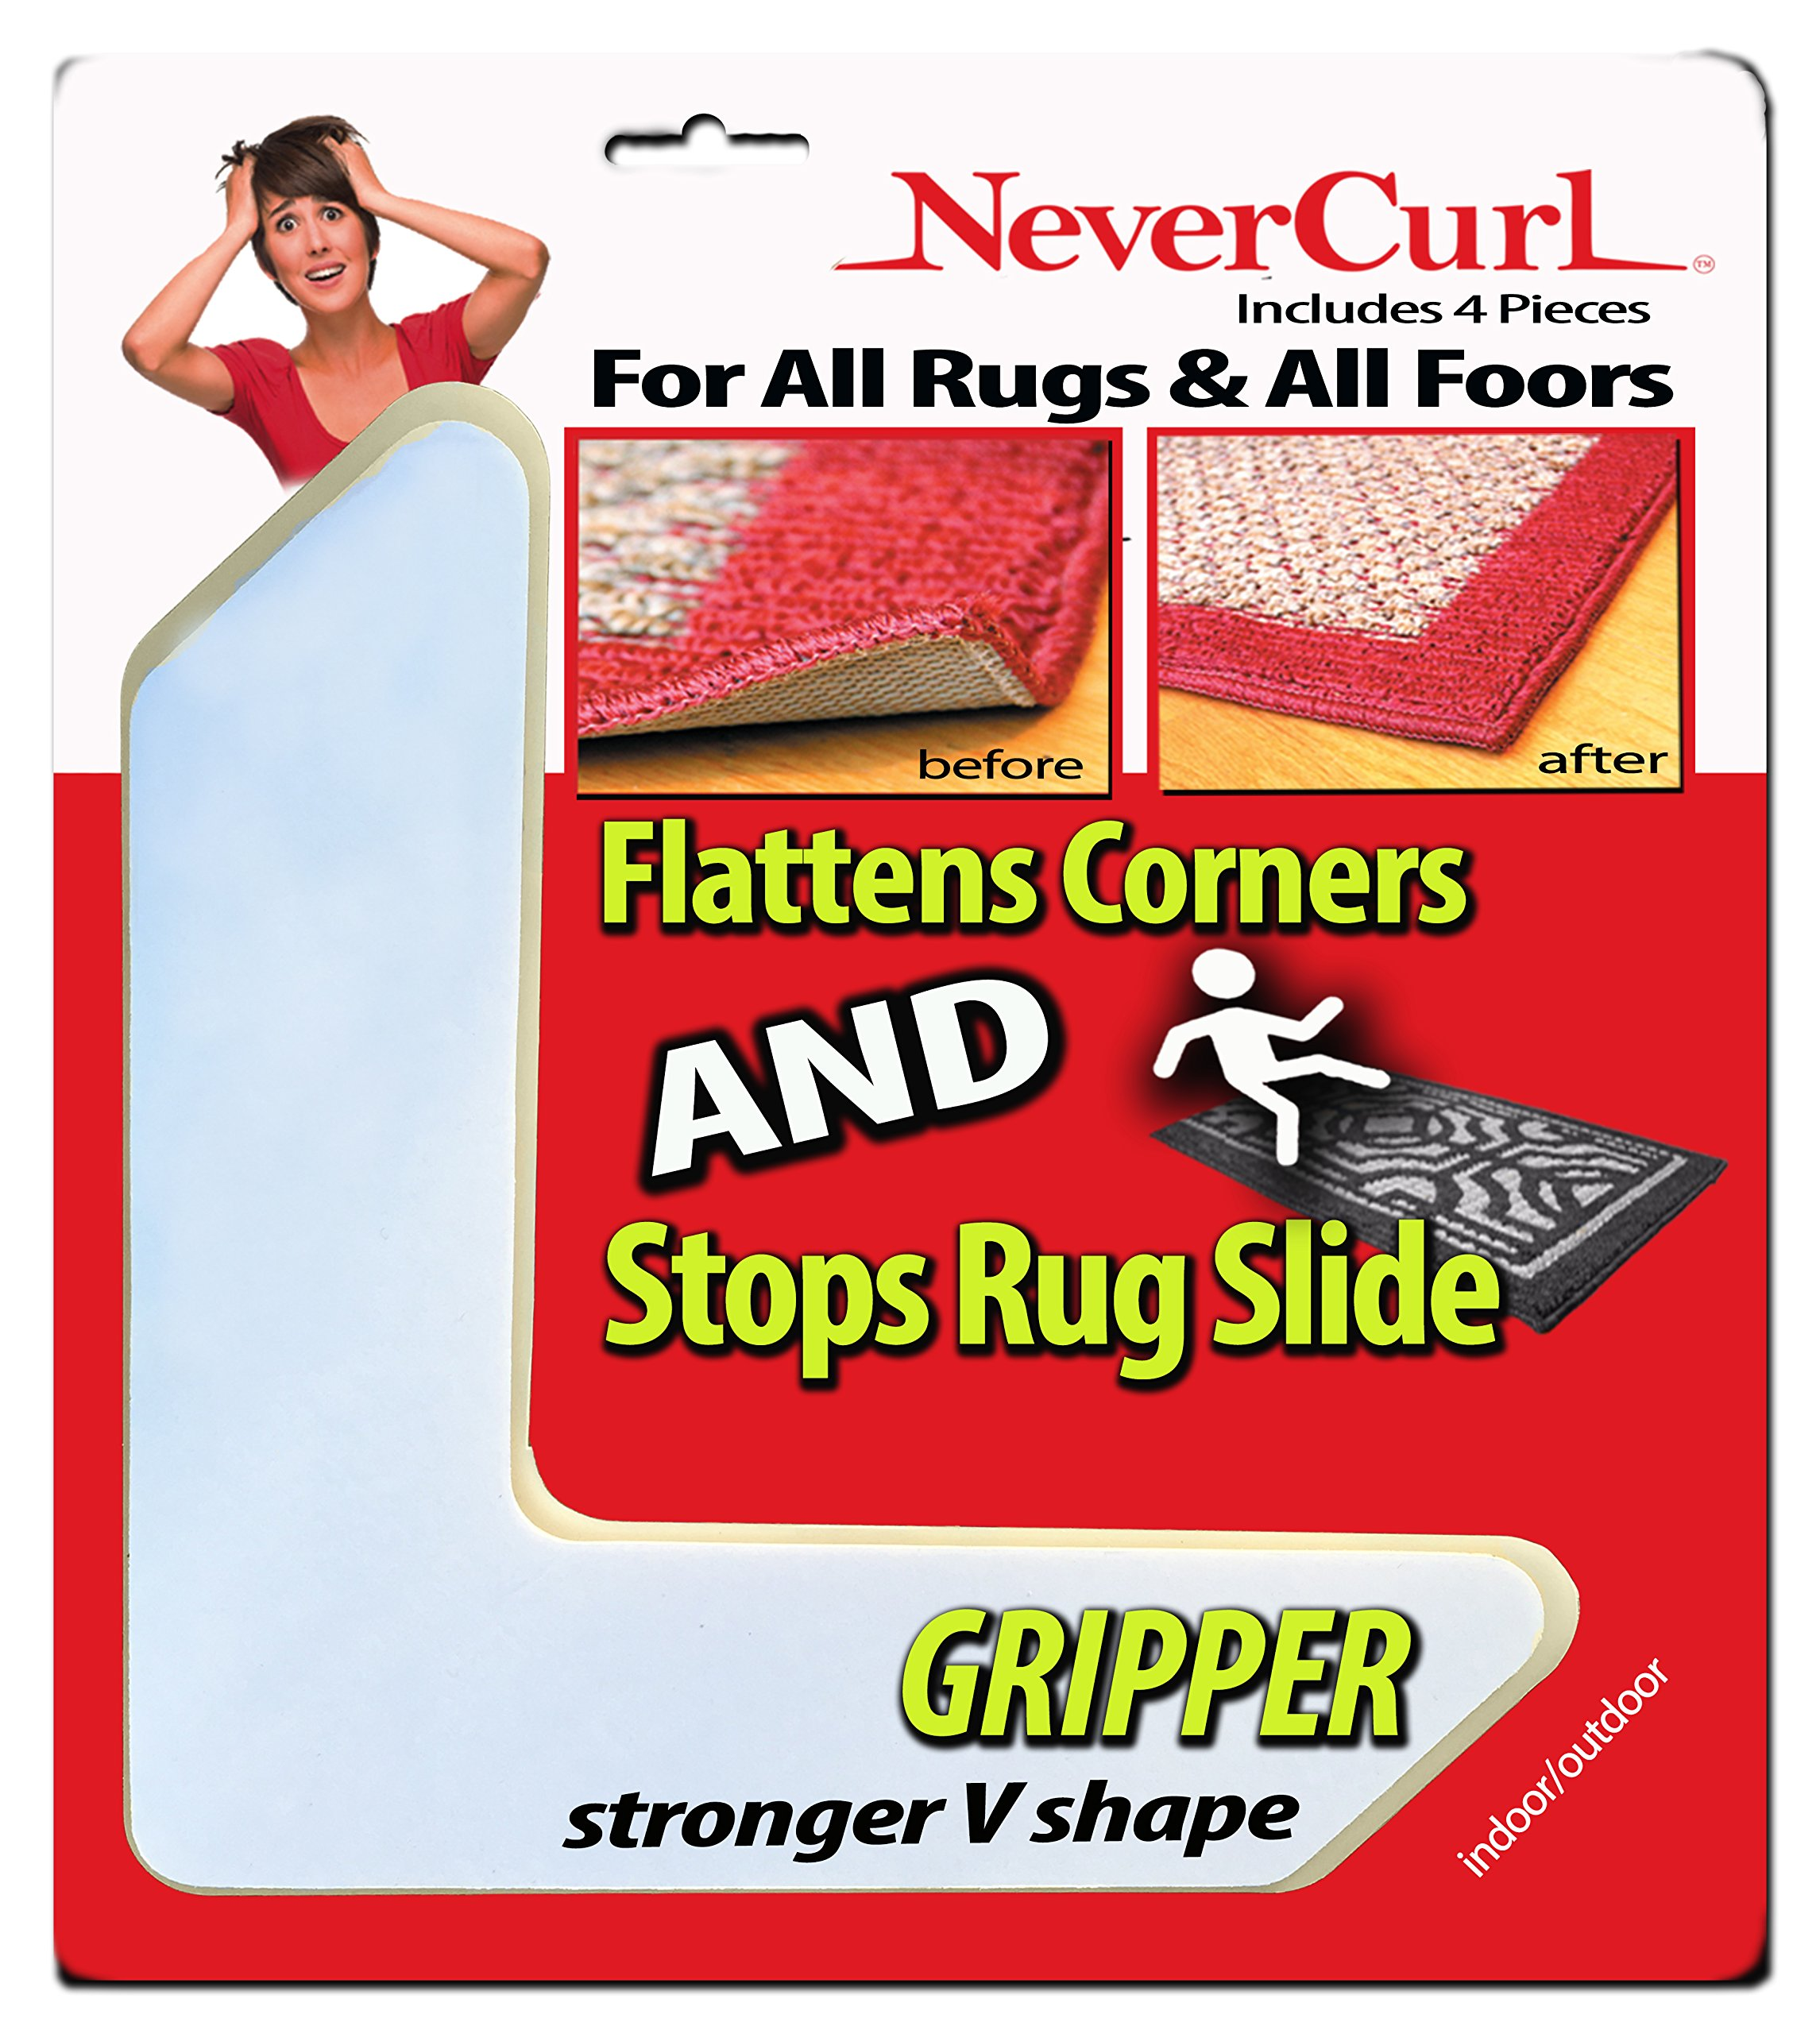 Grips the Rug with NeverCurl Includes 4''V'' Shape Corners - Patent Pending. Instantly Flattens Rug Corners AND Stops Rug Slipping. Gripper uses Renewable Sticky Gel. By NeverCurl